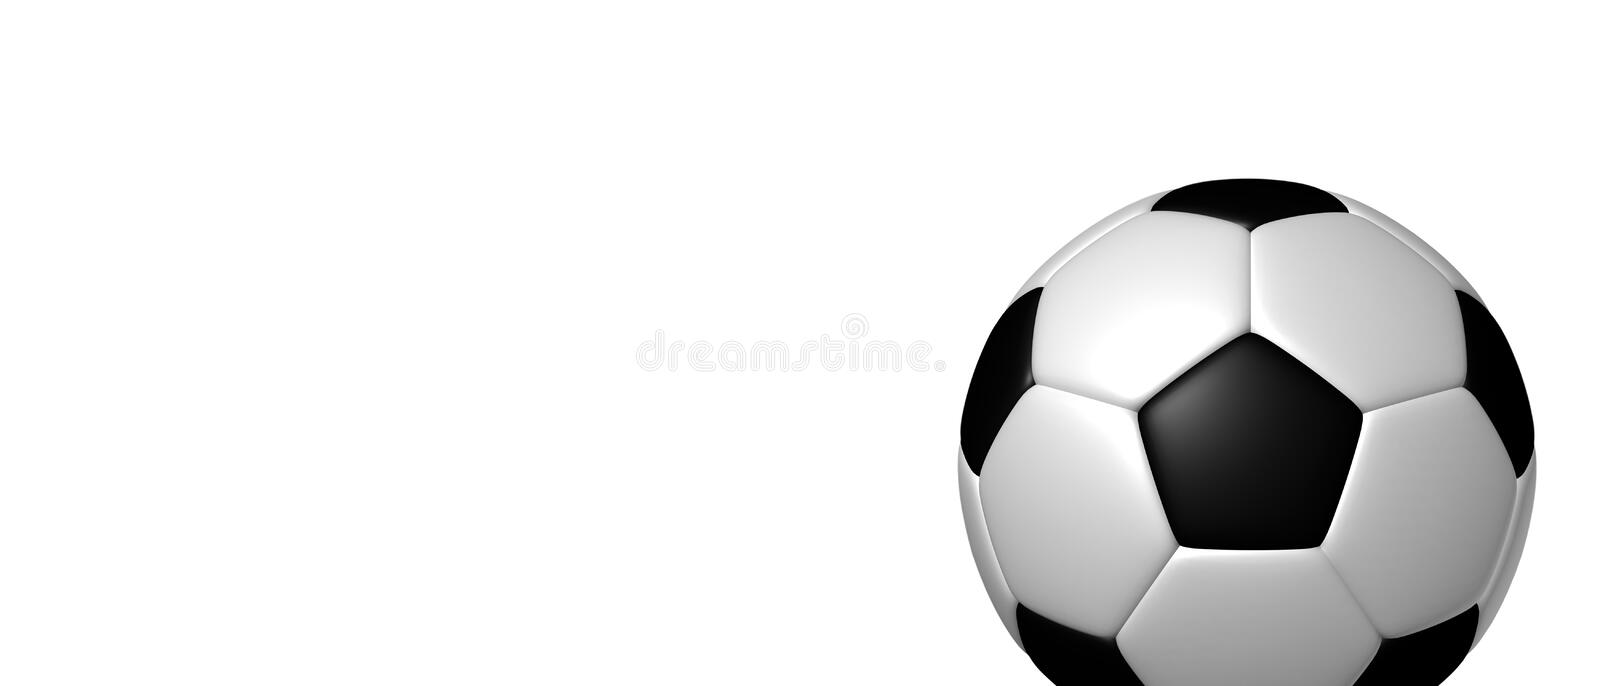 Soccer Ball, Football Banner With Free Copy Space - Black And White 3D Illustration Isolated On White Background vector illustration